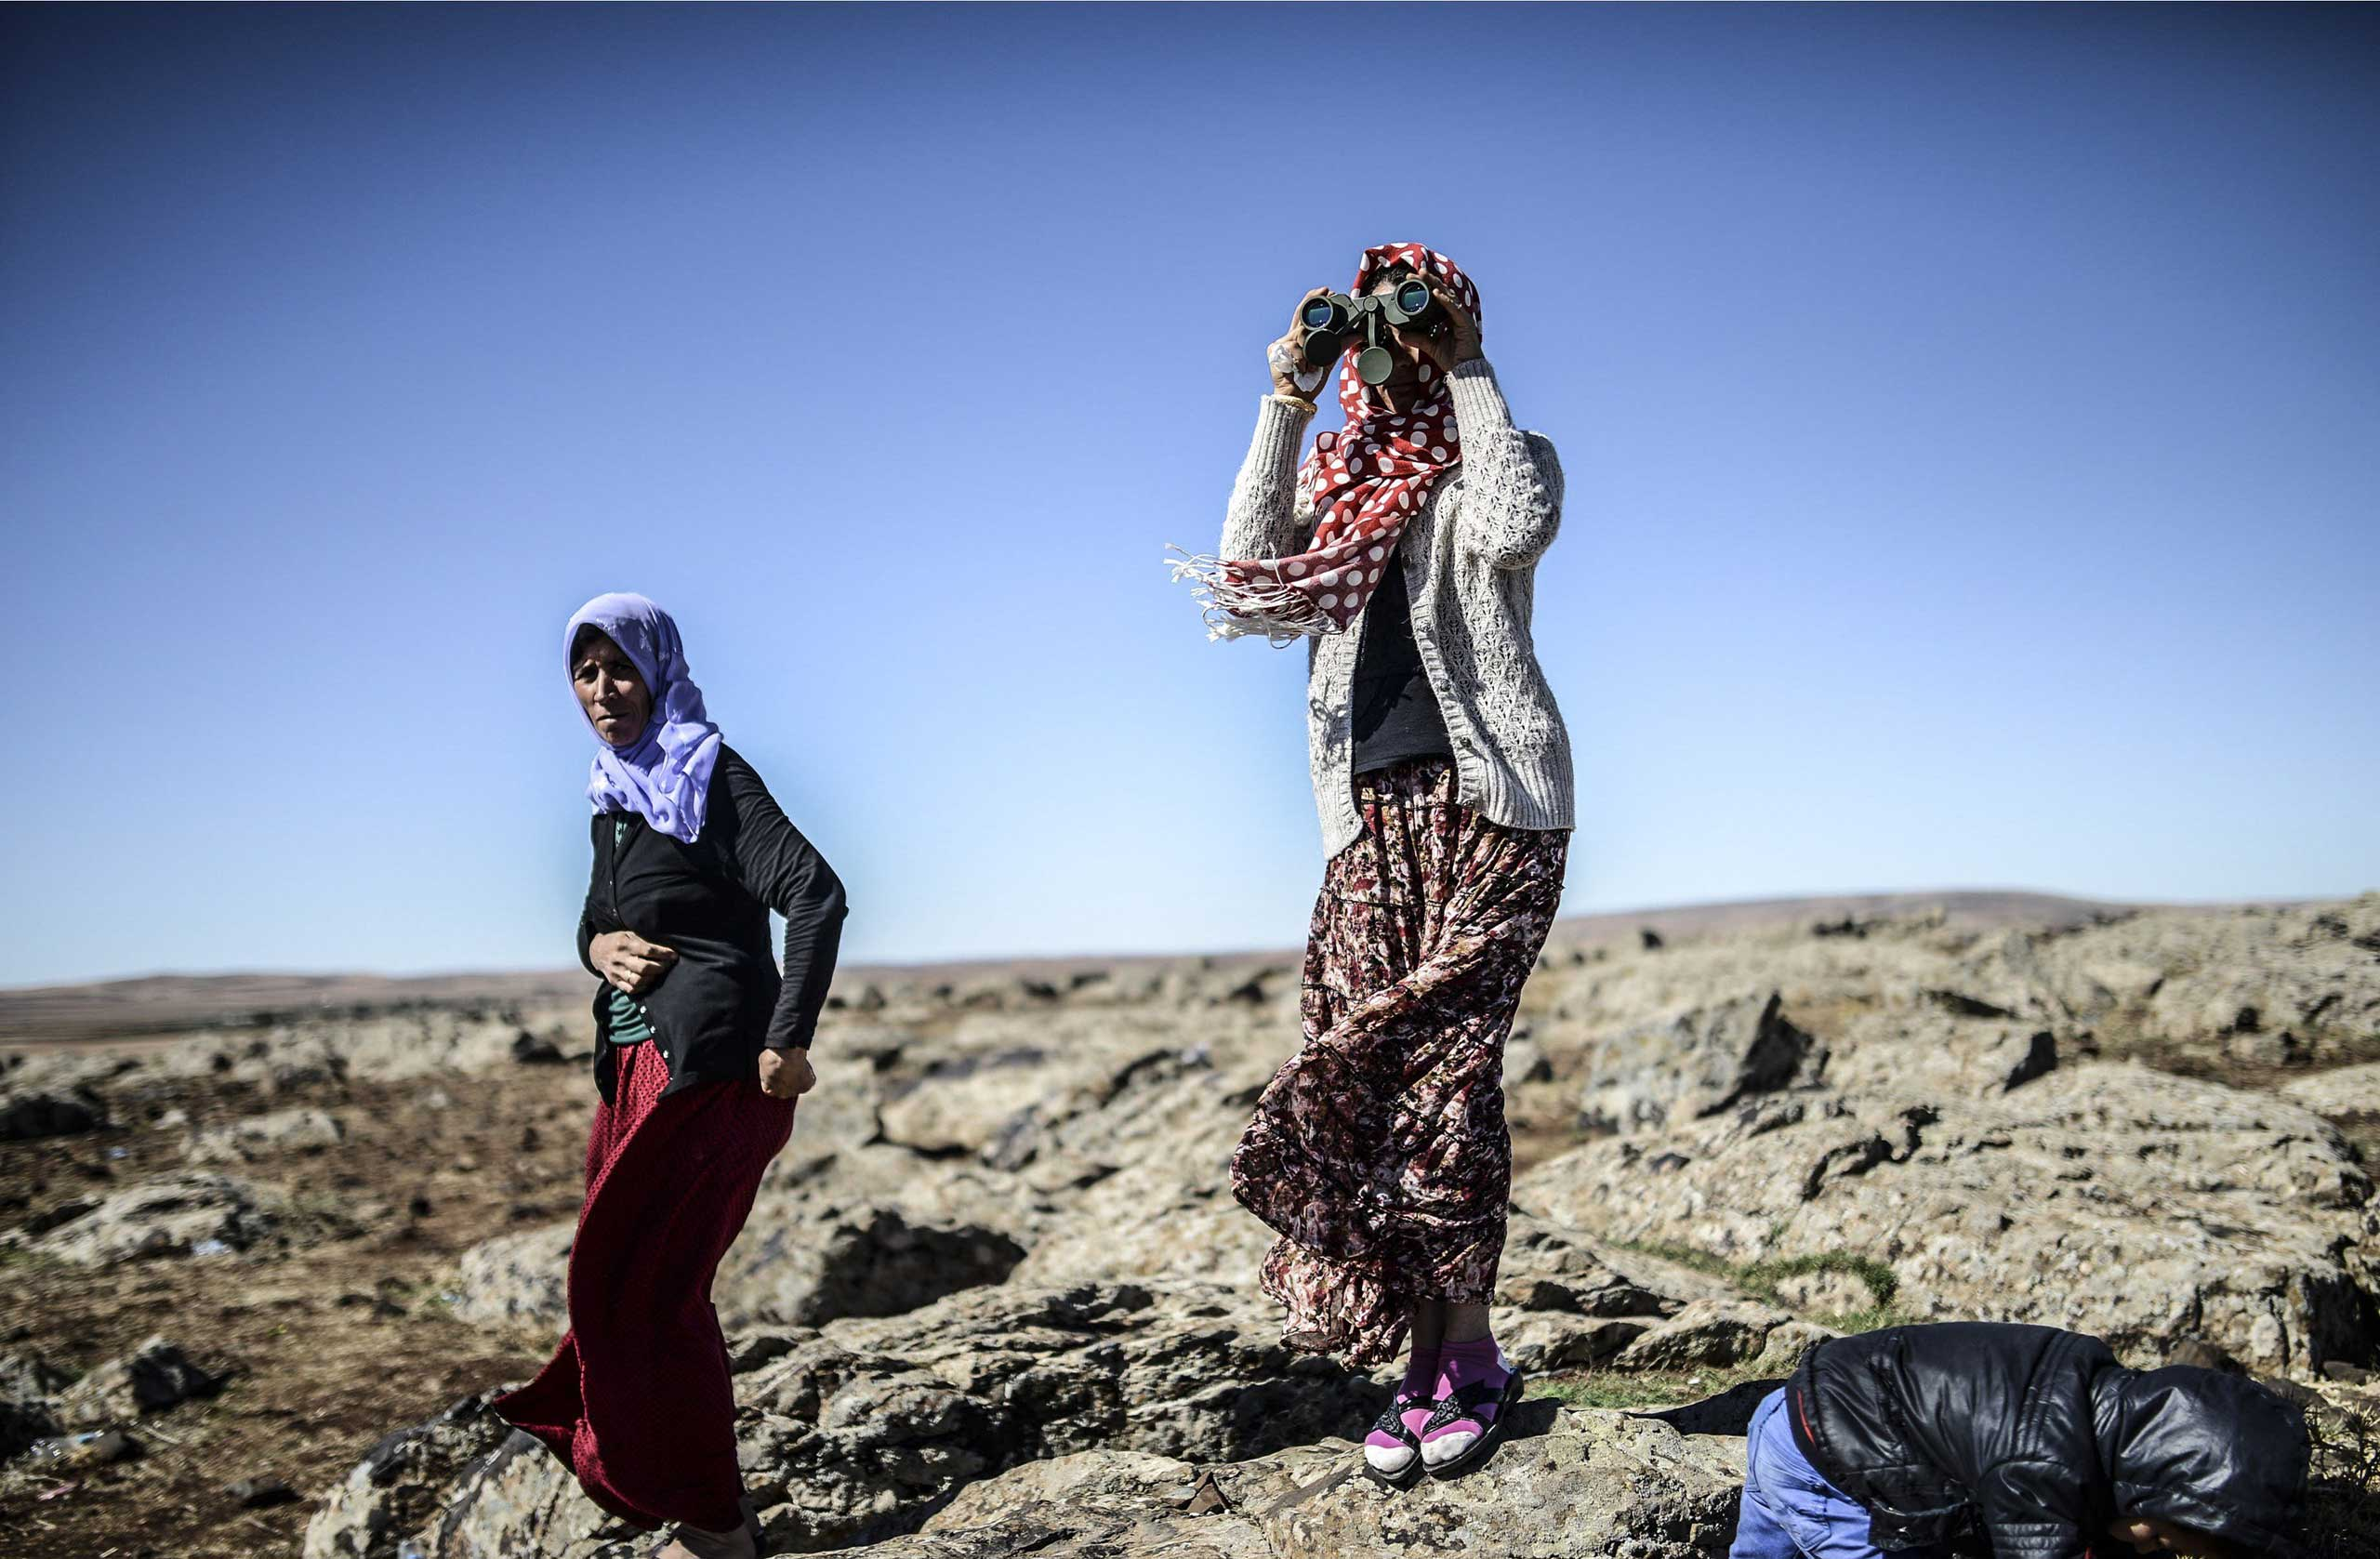 Oct. 20, 2014. Members of the Syrian Kurdish Altay family look for their  relative Zamani Suruc, who is fighting Islamic State (IS) jihadists in the Syrian border town of Kobane, from the Turkish Syrian border village of Mursitpinar.